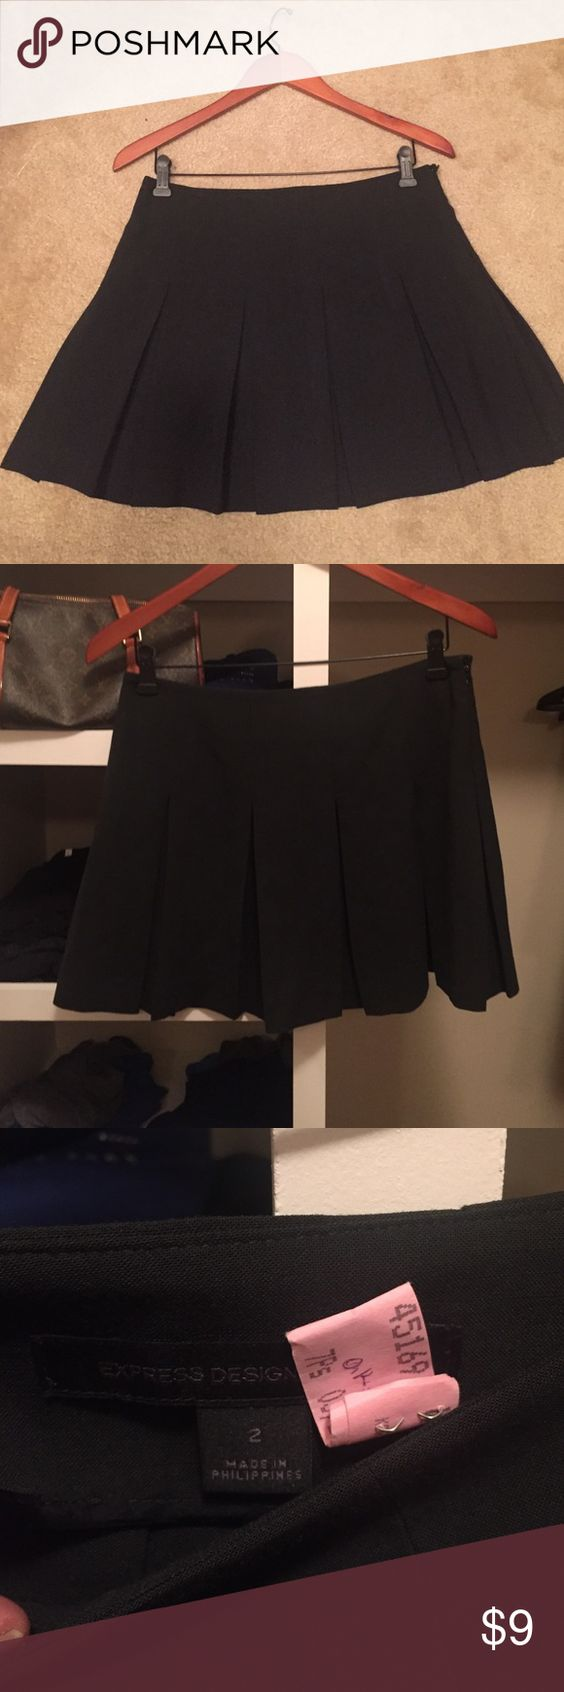 Express mini skirt- SALE Beautiful mini skirt from Express. Dark grey color. Large pleads. Smoke and pet free house. Great condition. Dry cleaned and ready to be worn Express Skirts